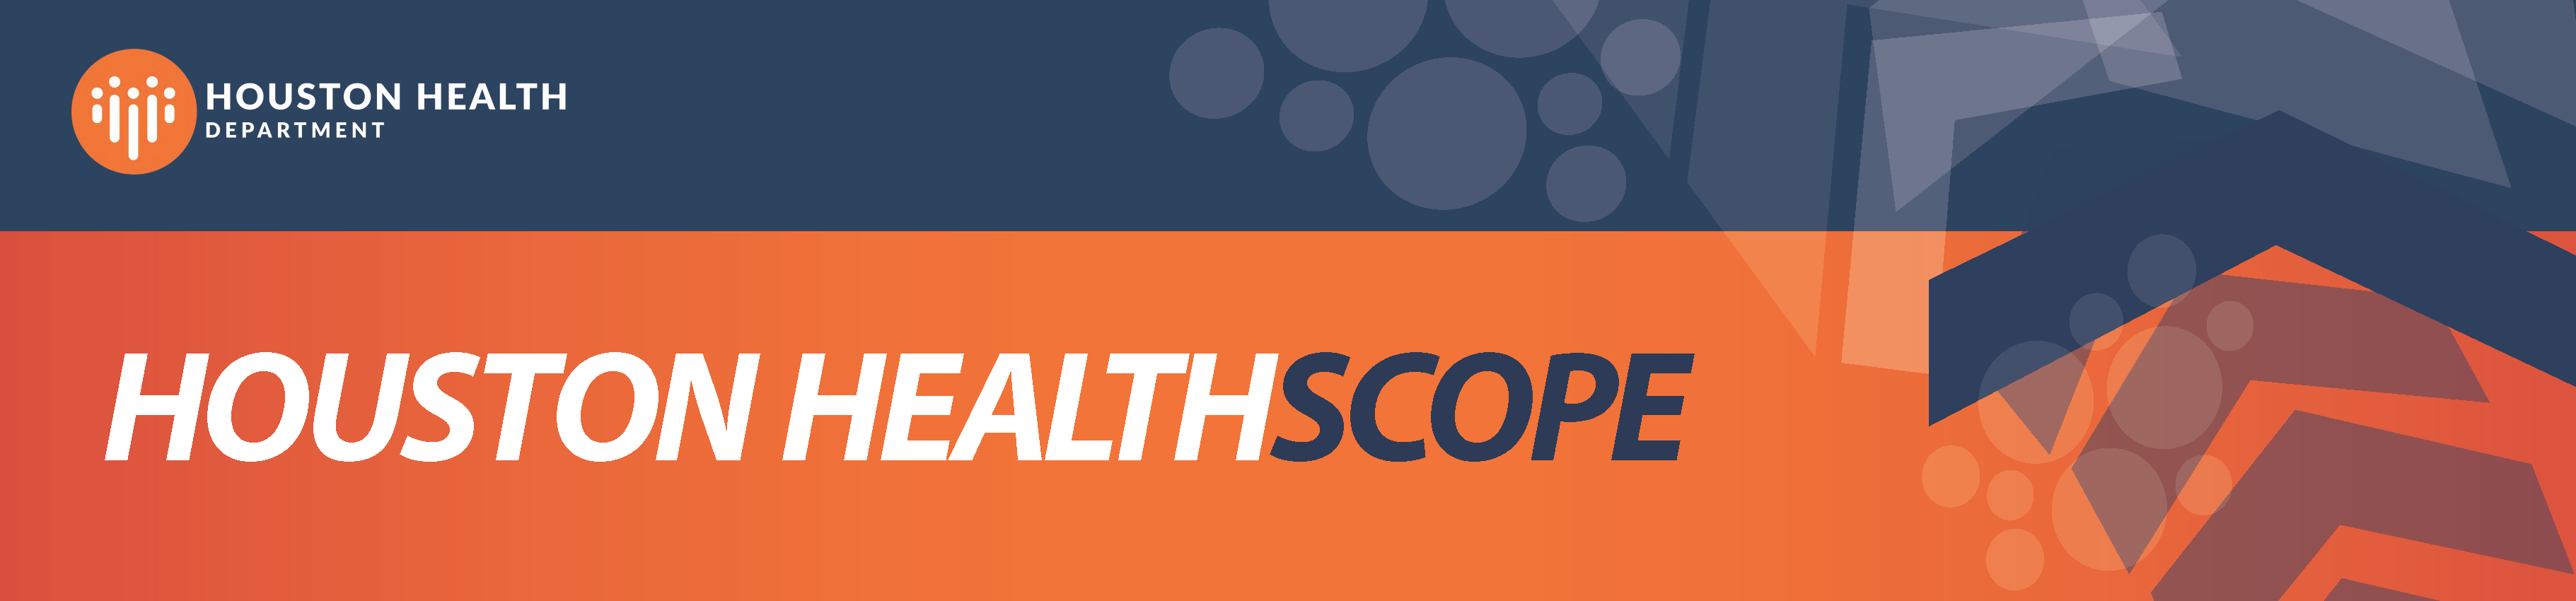 Houston HealthScope COVID-19 Special Edition 24 1